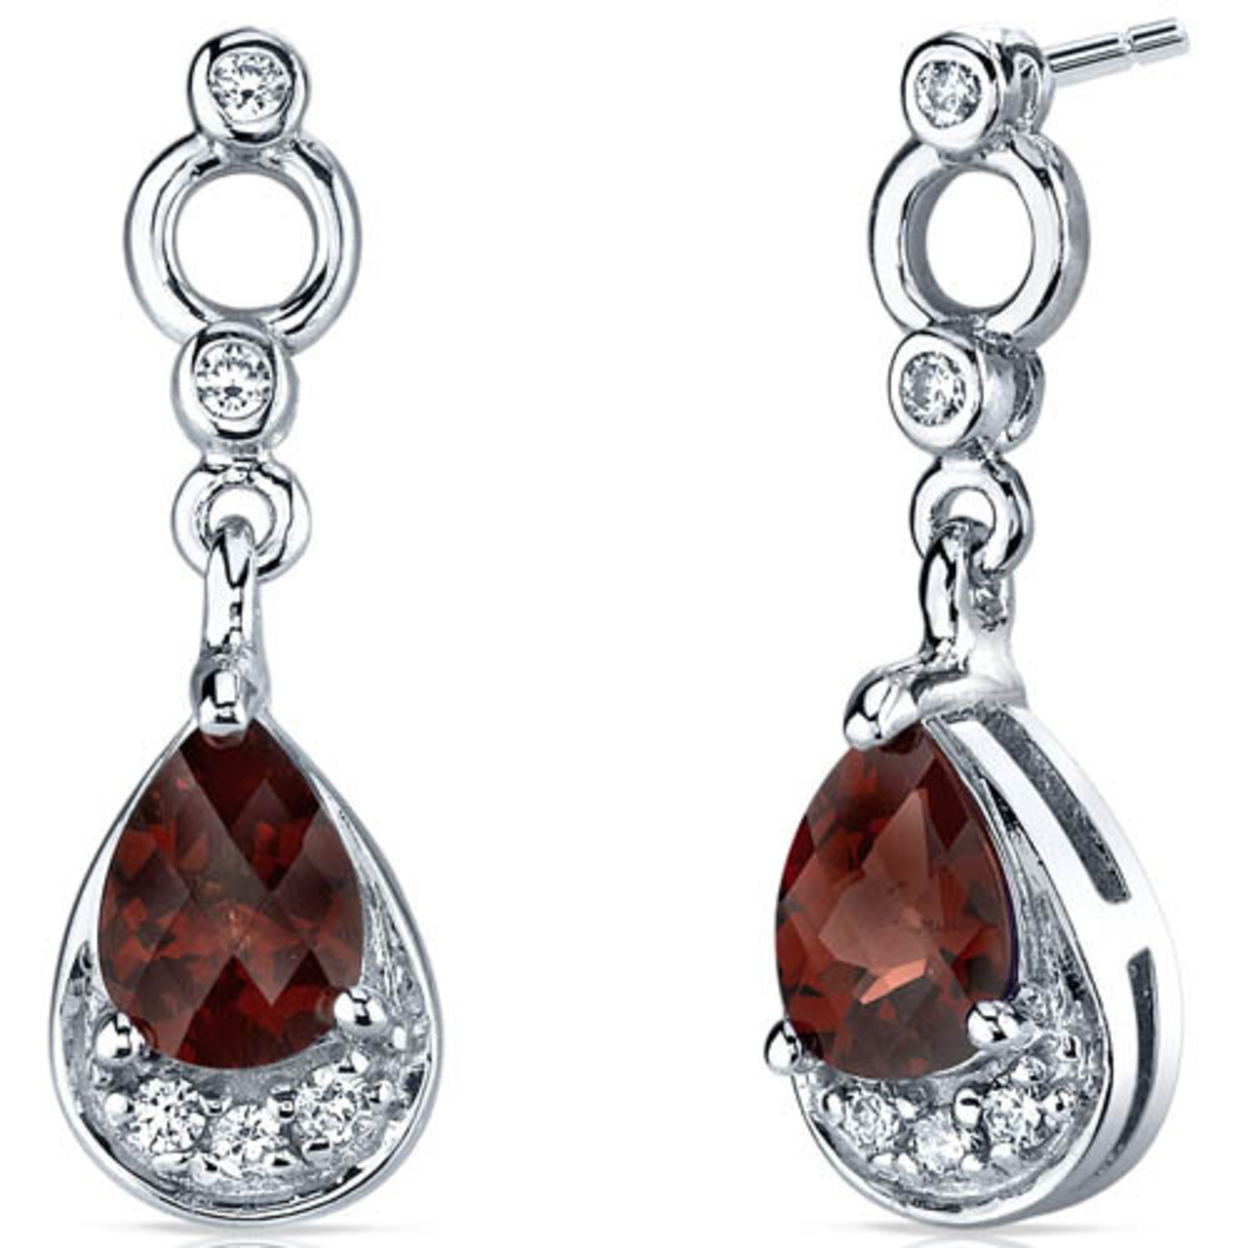 Simply Classy 1.50 Carats Garnet Dangle Earrings In Sterling Silver Style Se7140